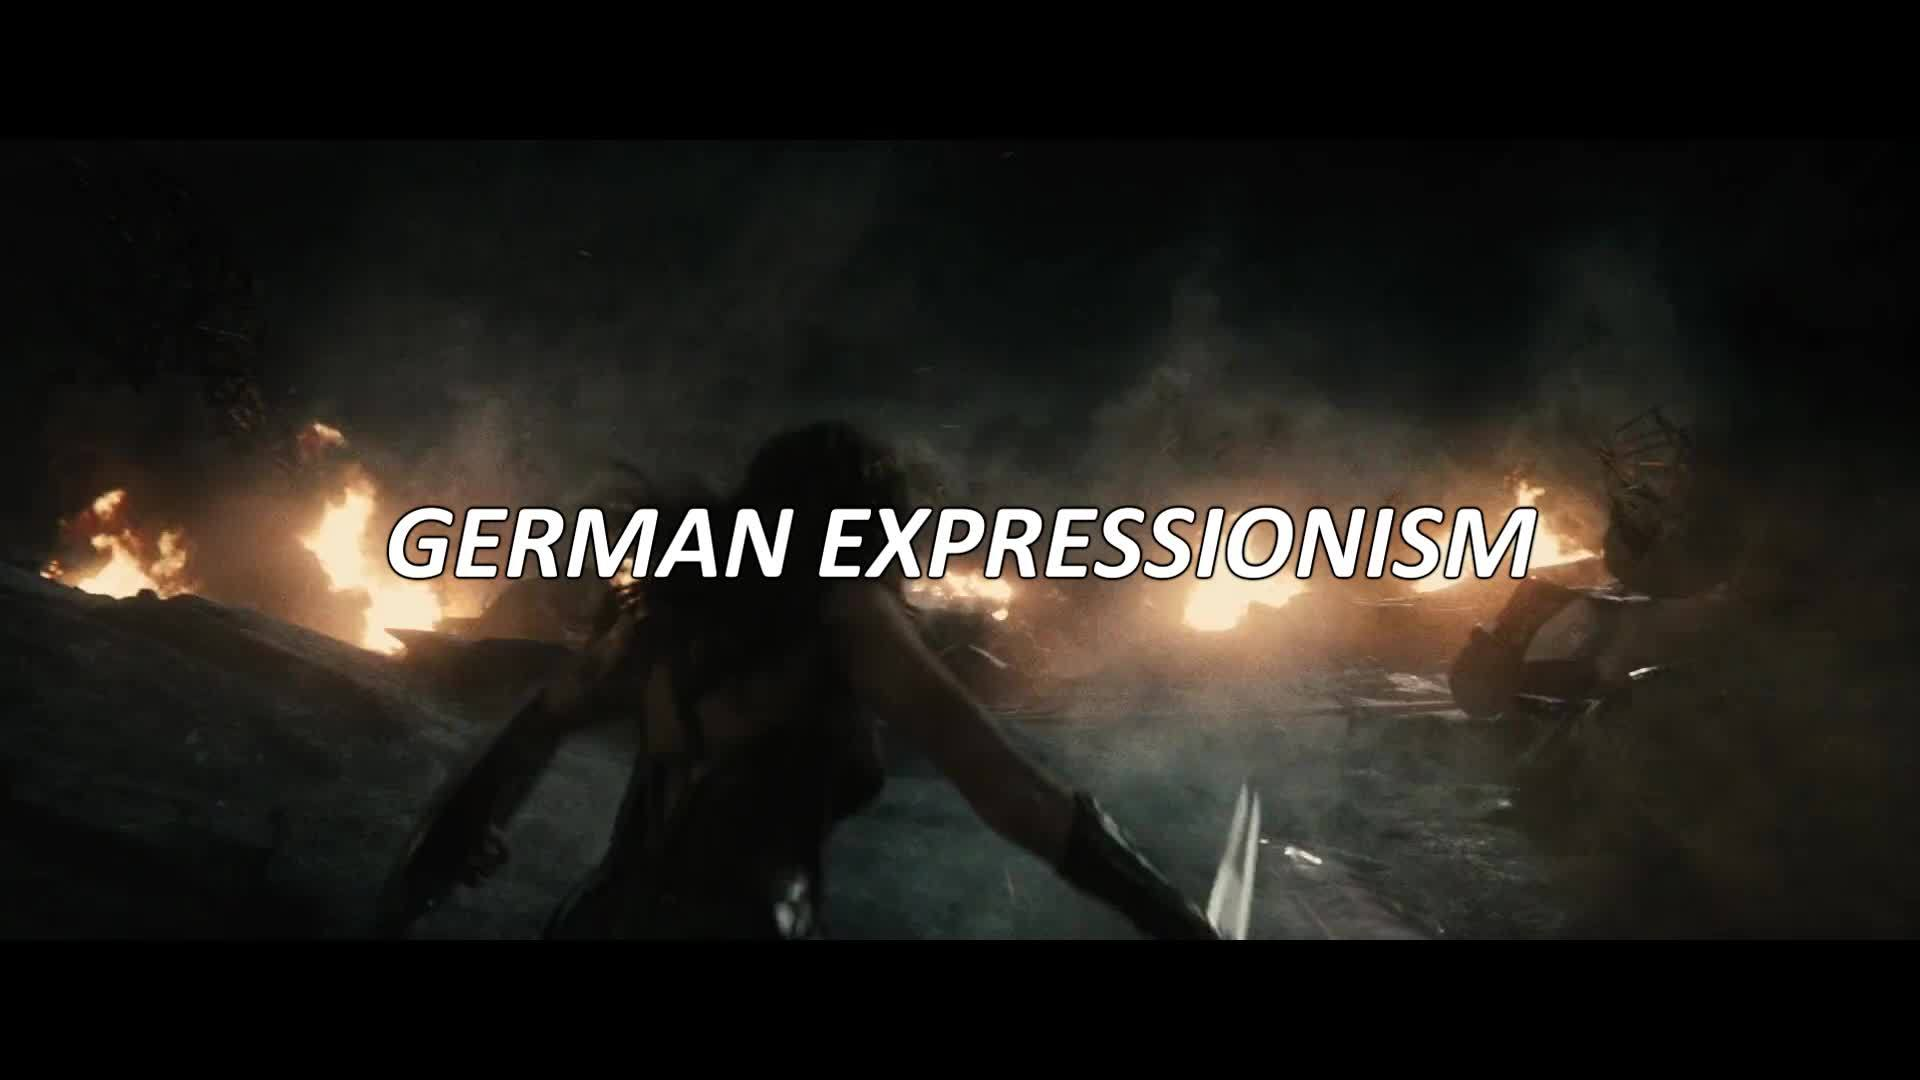 dc_cinematic, movies, German Expressionism GIFs